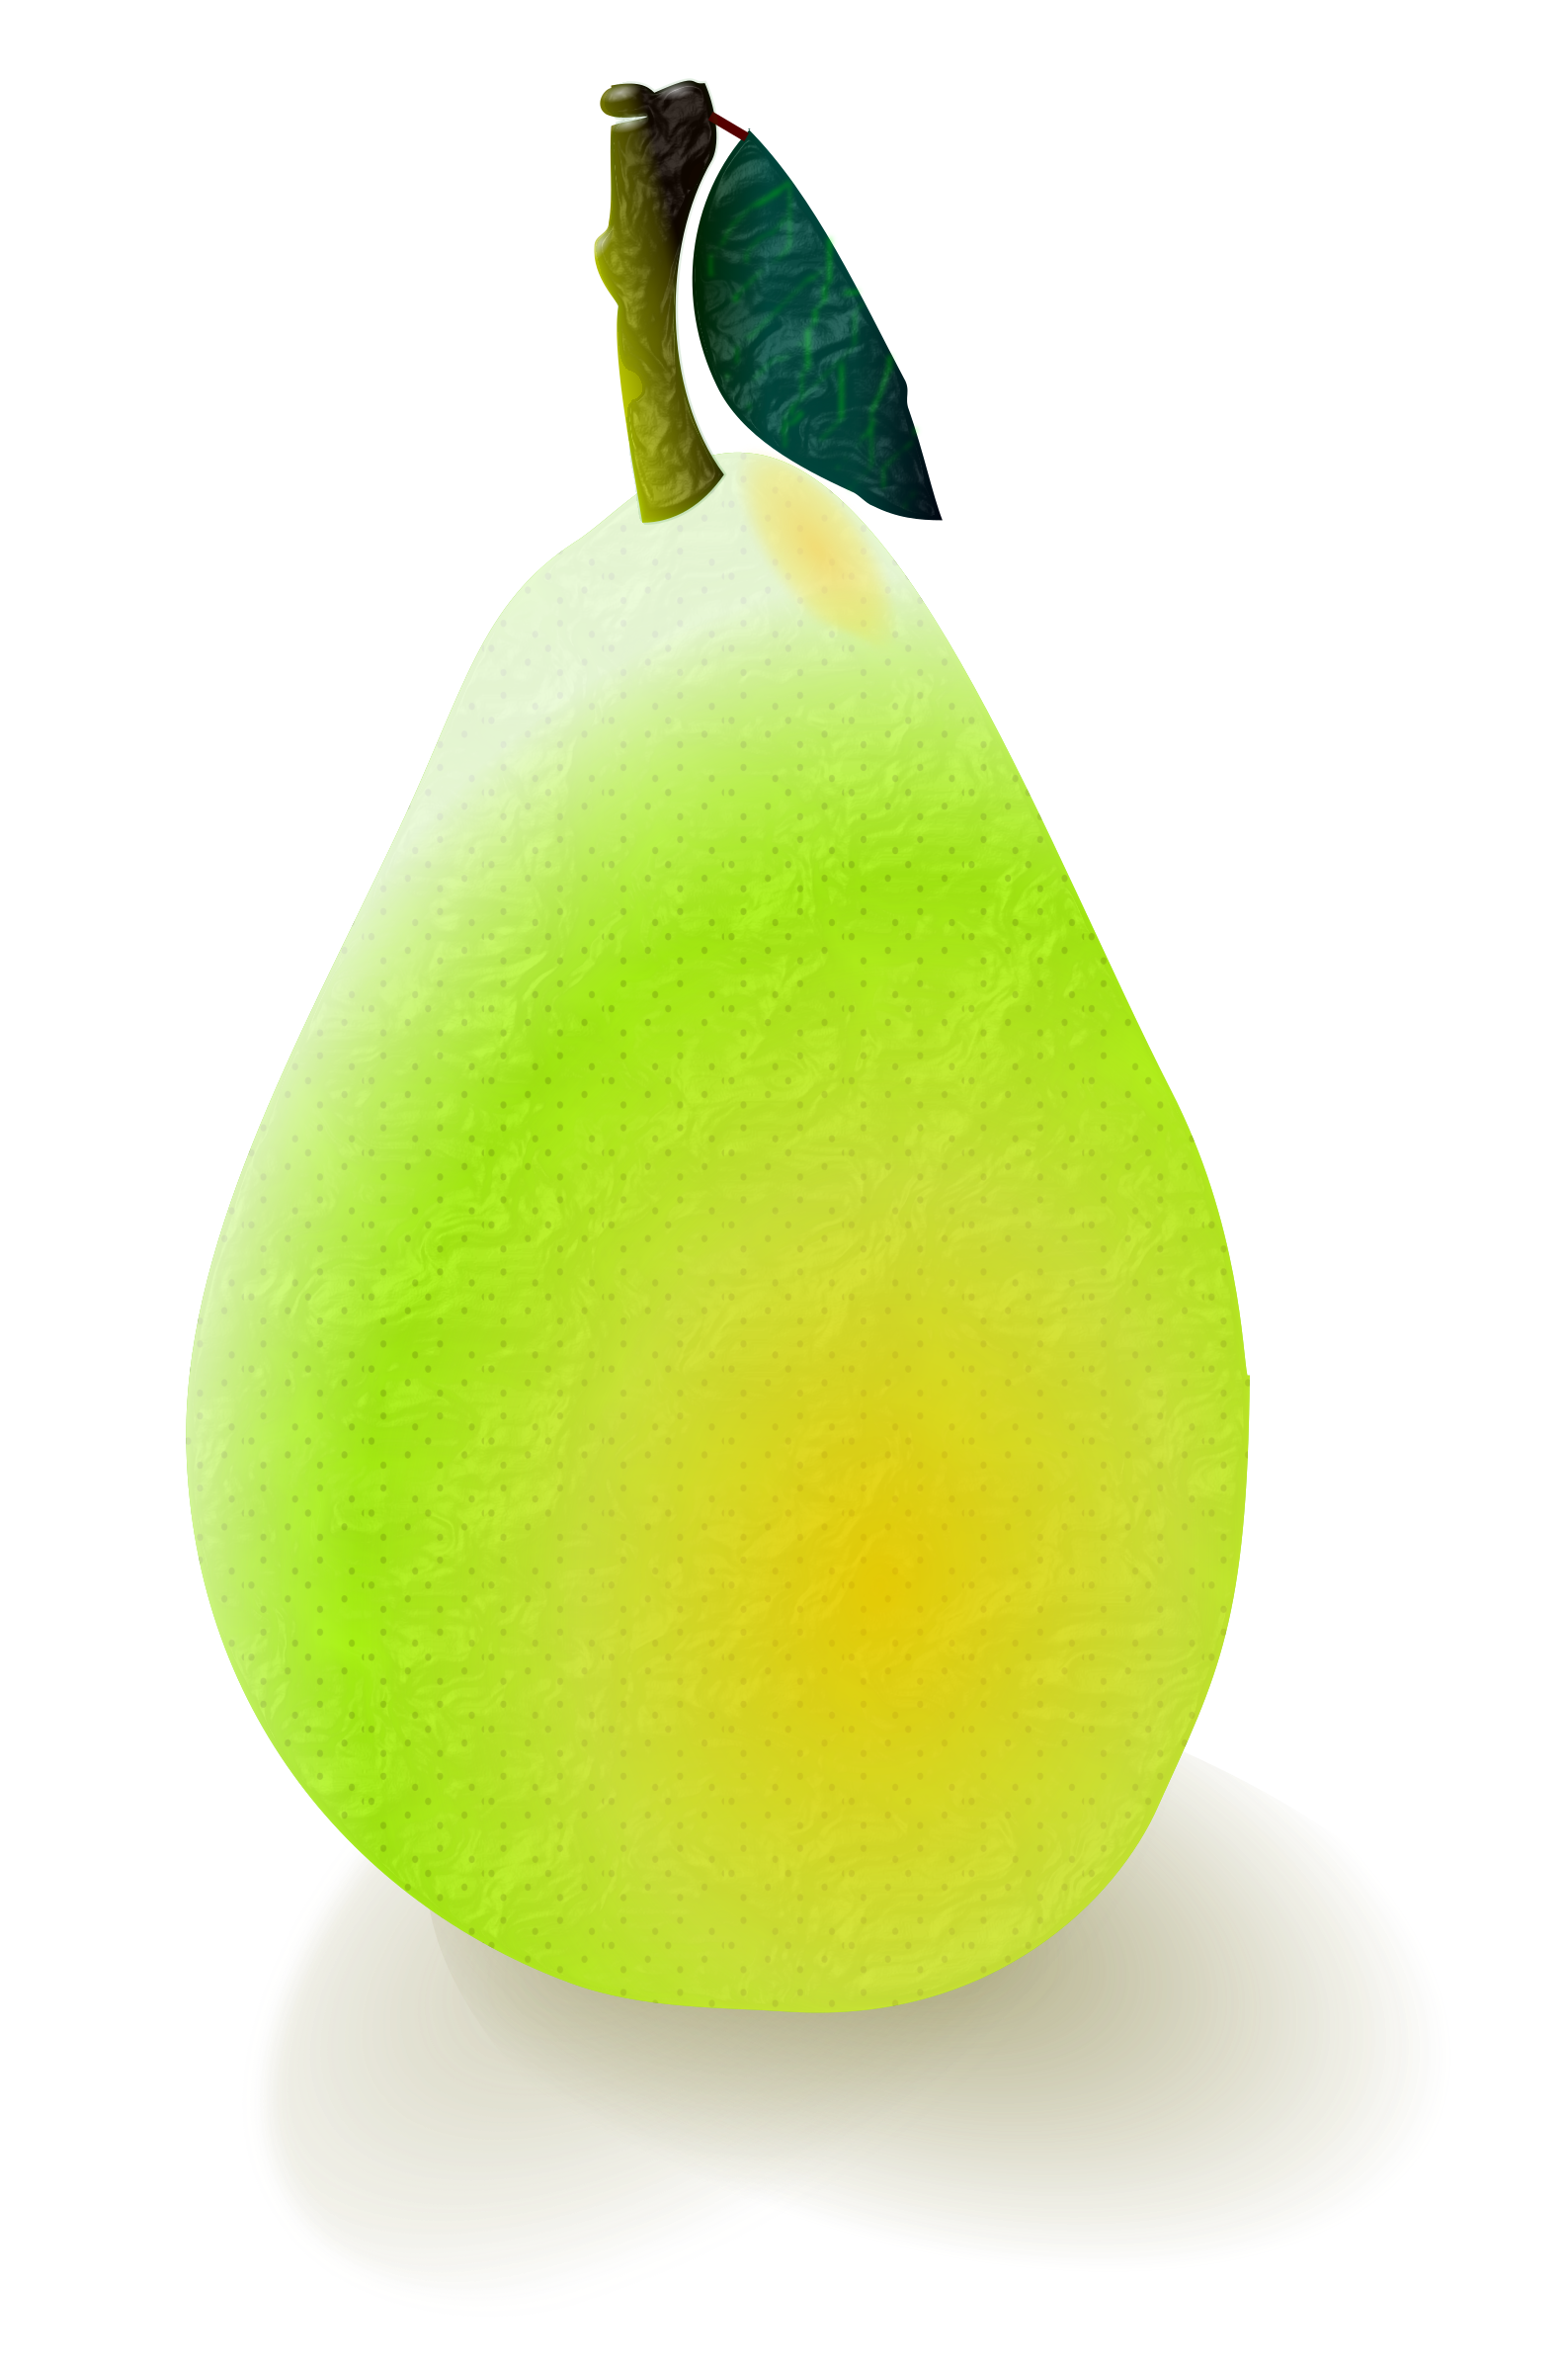 pear by pawelf